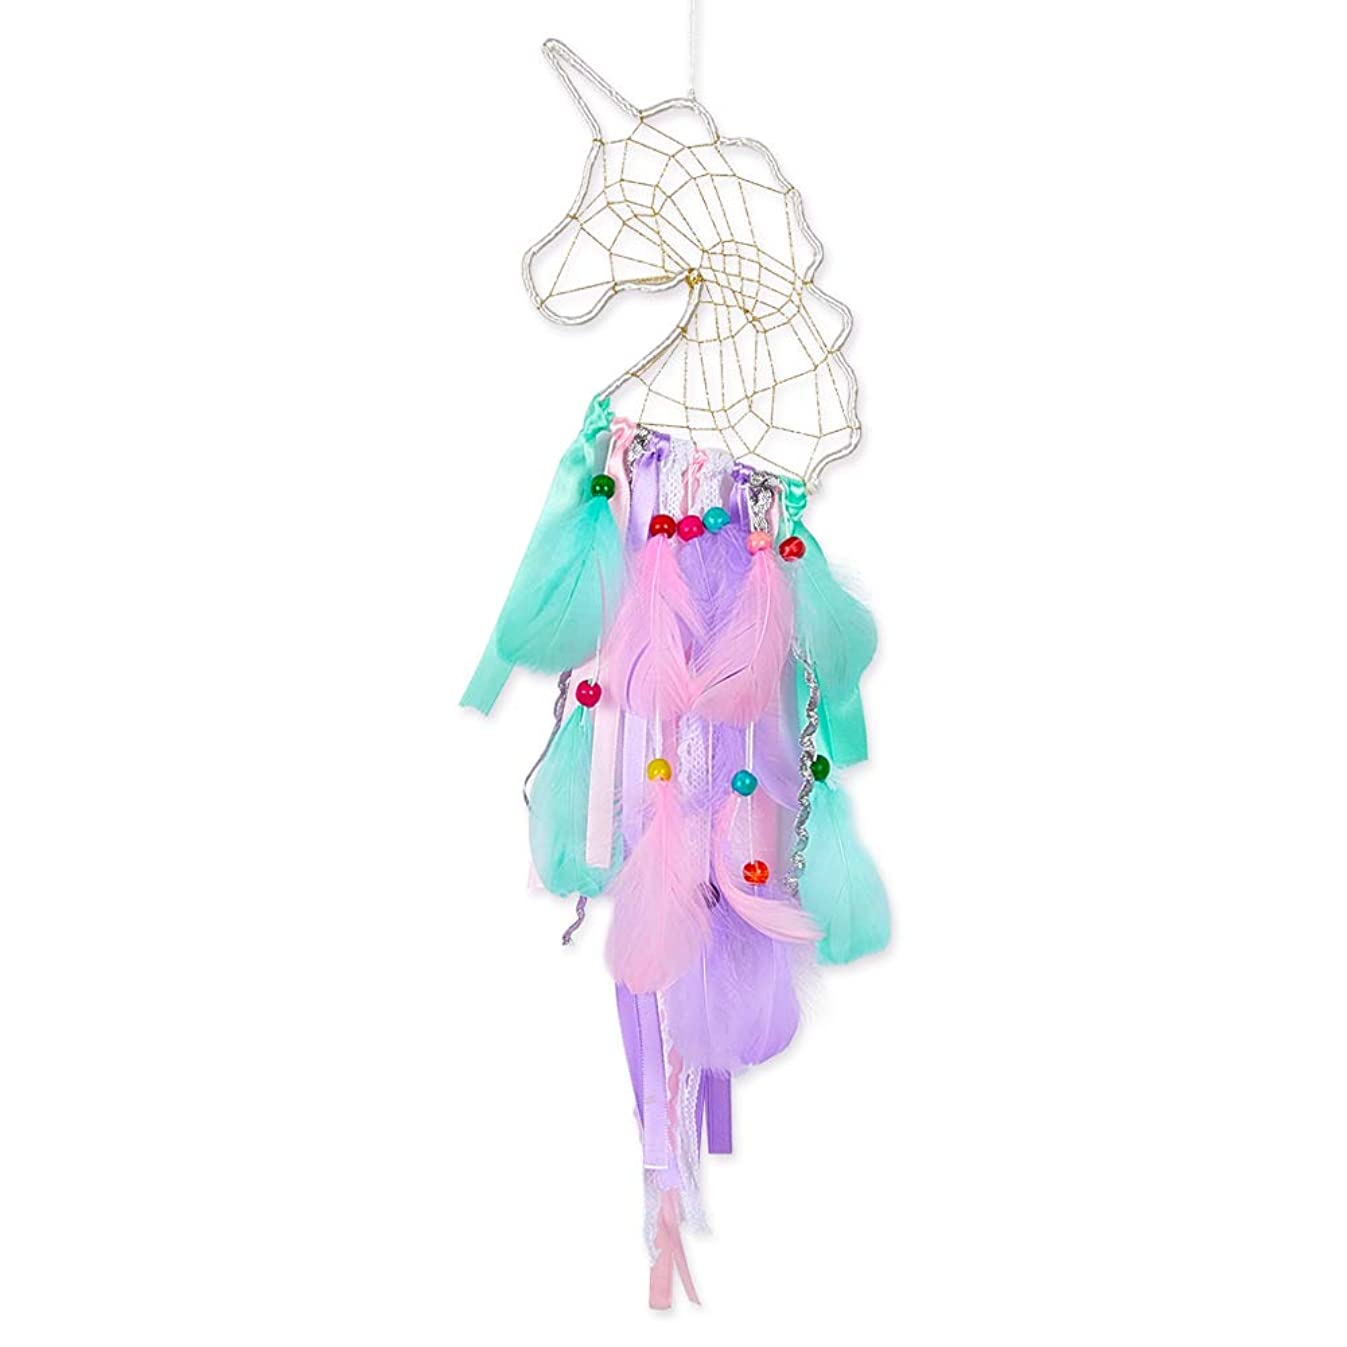 Beinou Unicorn Dream Catcher Colorful Feather Dream Catcher Handmade Mini Dream Catchers DIY Dream Catcher for Girls Kids Nursery Bedroom Wall Hanging Decoration